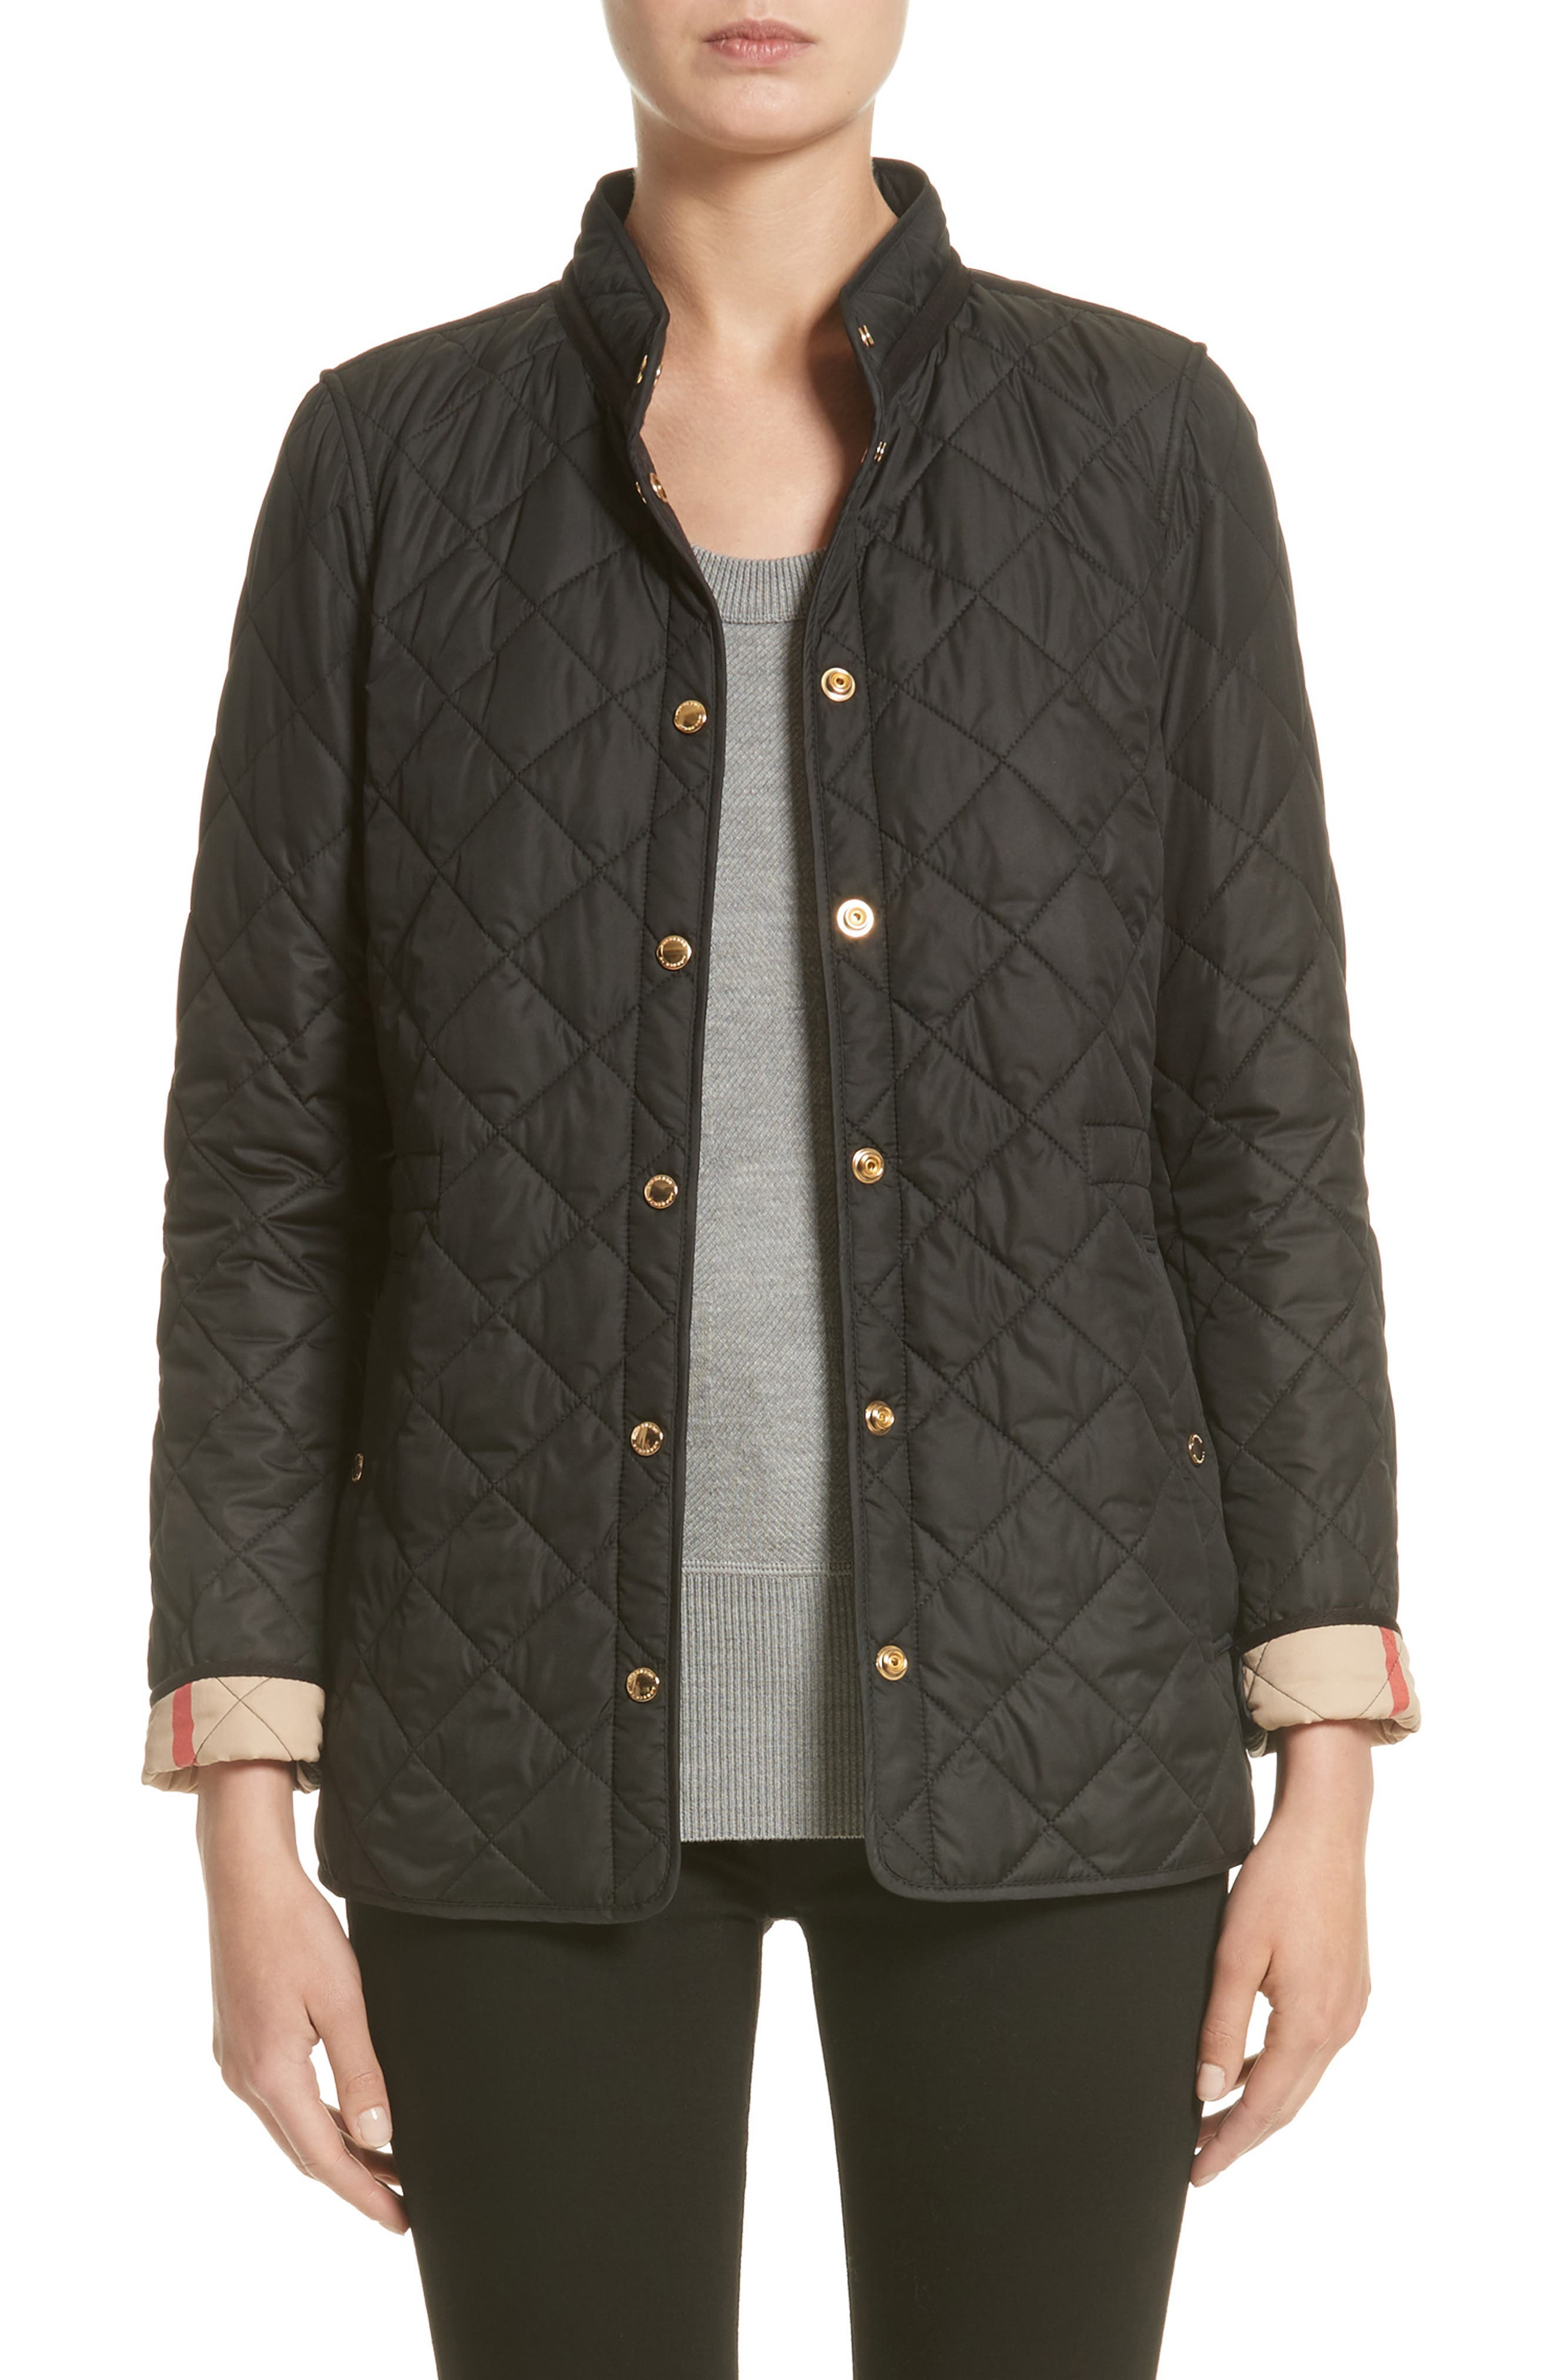 Pensham Quilted Jacket,                             Main thumbnail 1, color,                             001